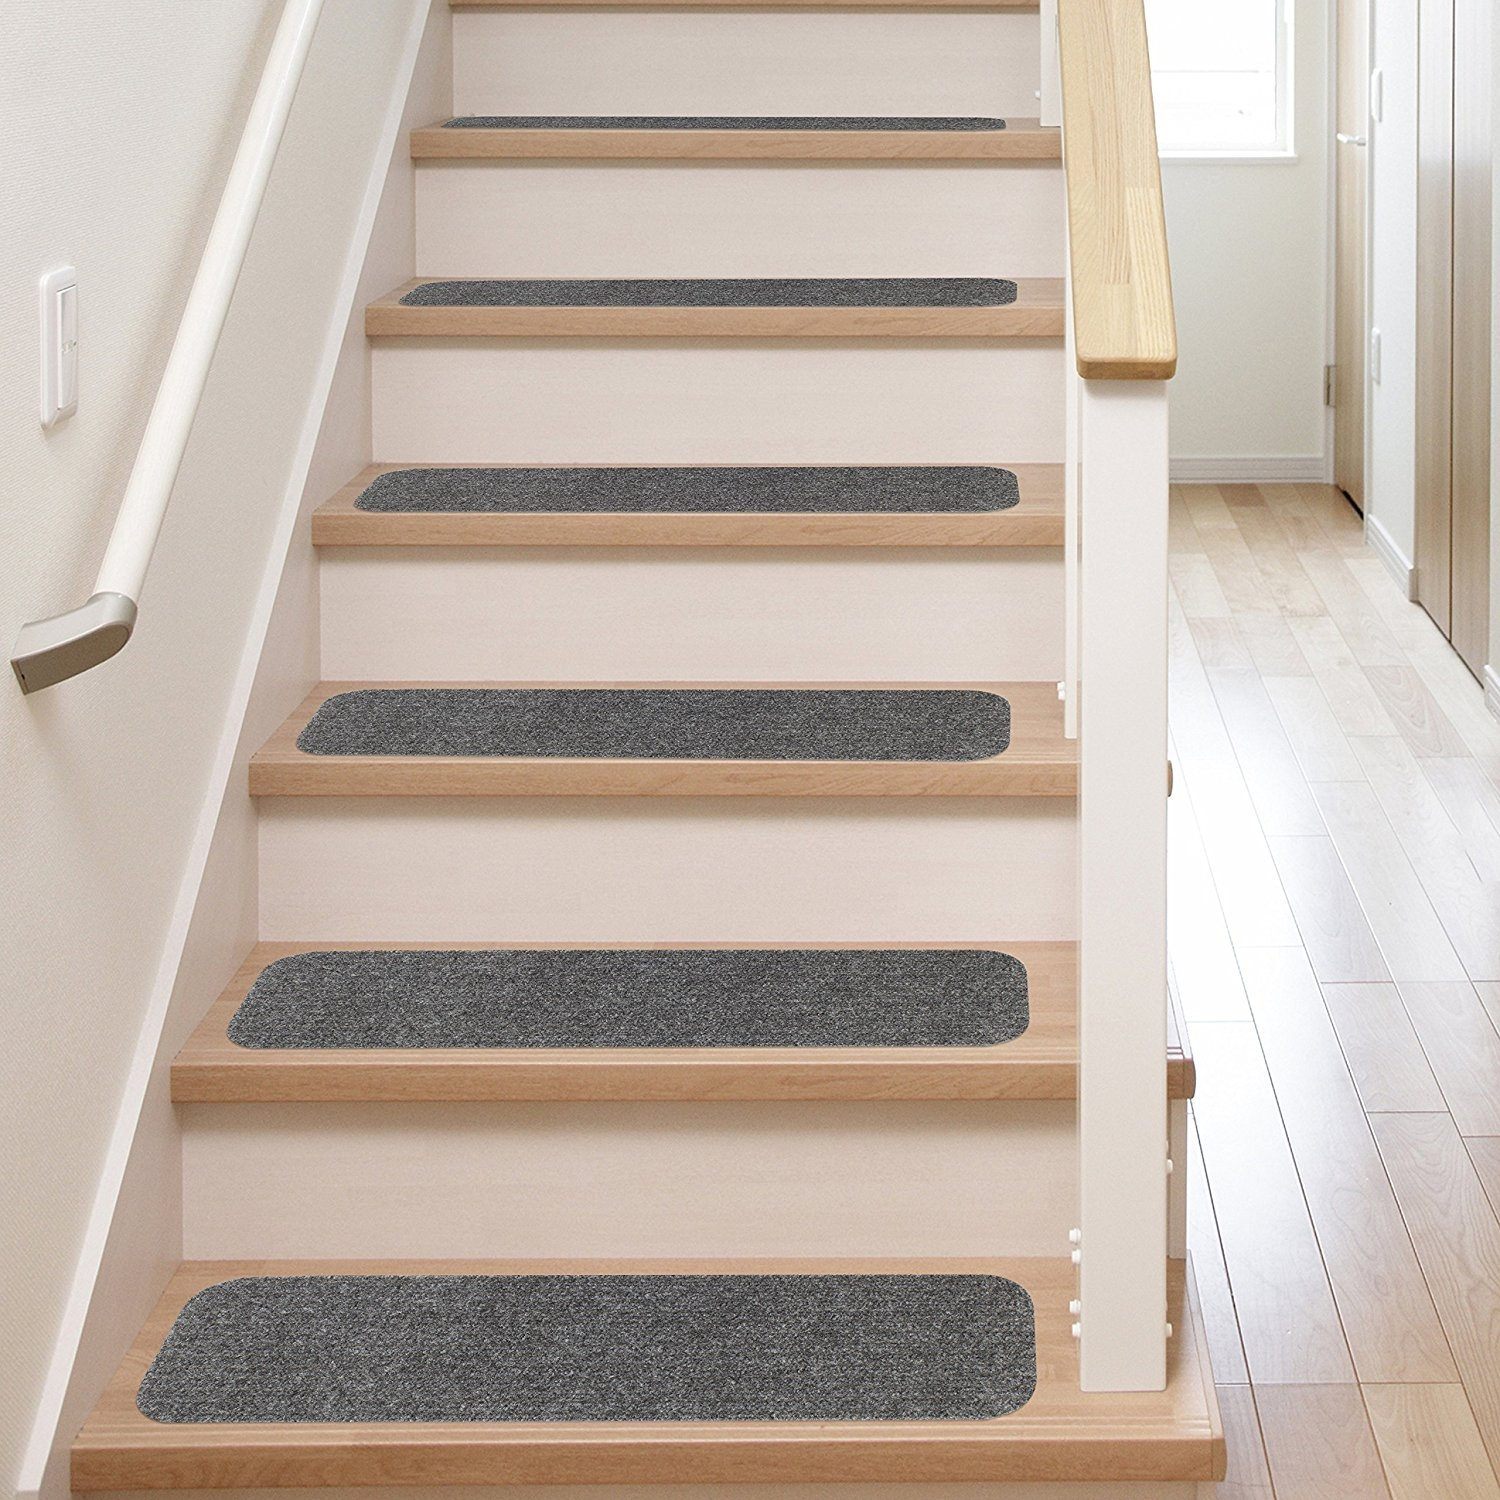 13 Stair Treads Non Slip Carpet Pads Easy Tape Installation Regarding Indoor  Stair Tread Mats (